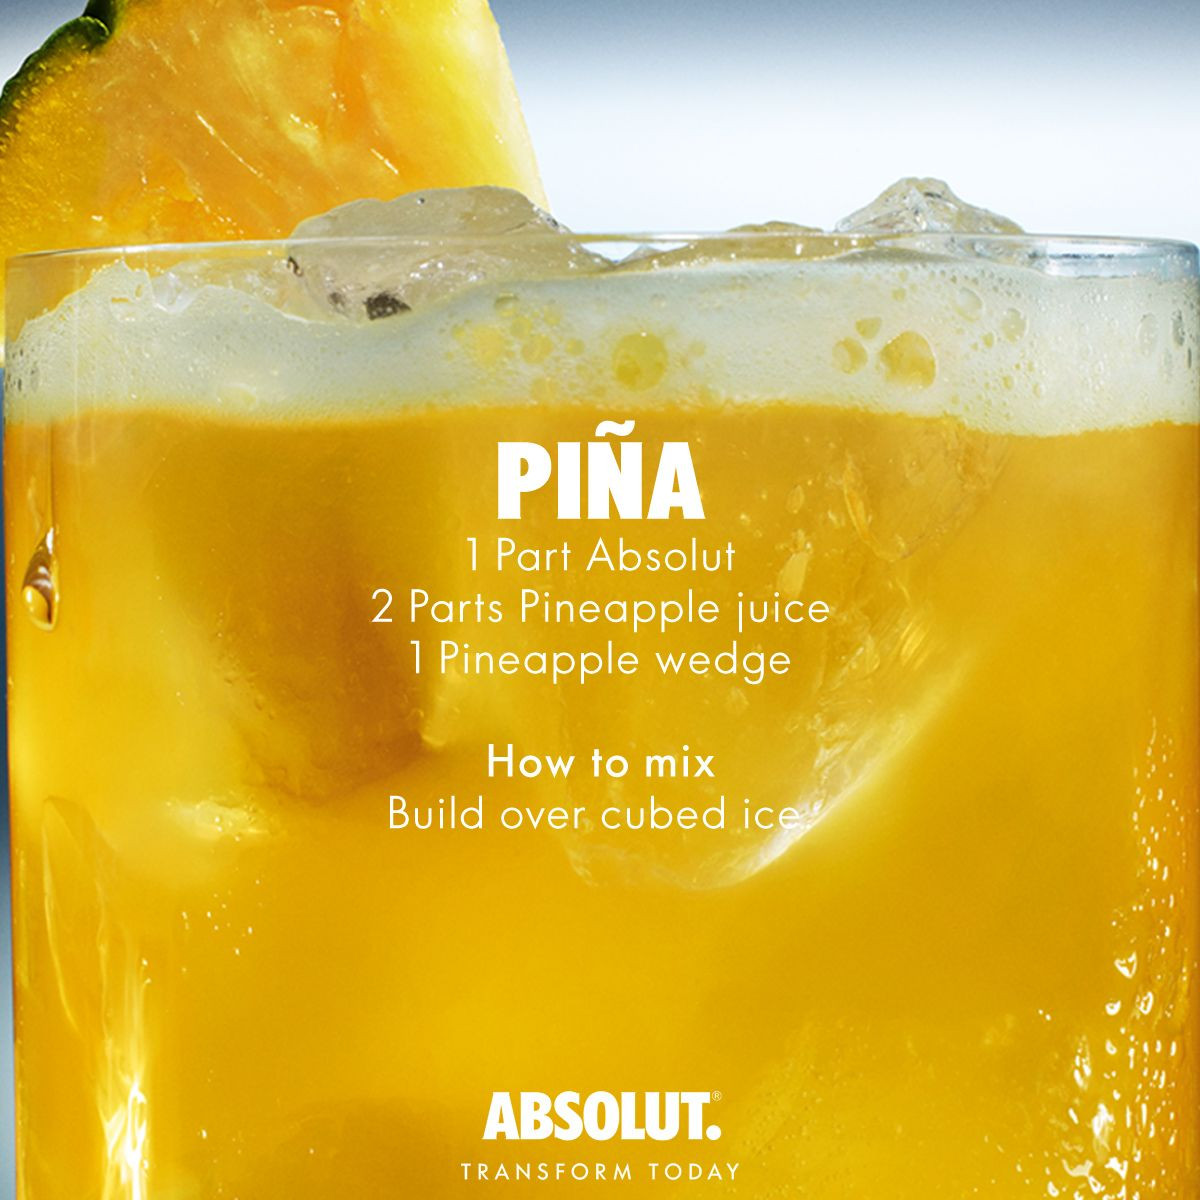 Mixed Drinks With Vodka And Pineapple Juice  Cocktail Recipes Pina 1 Part Absolut Vodka 2 Parts